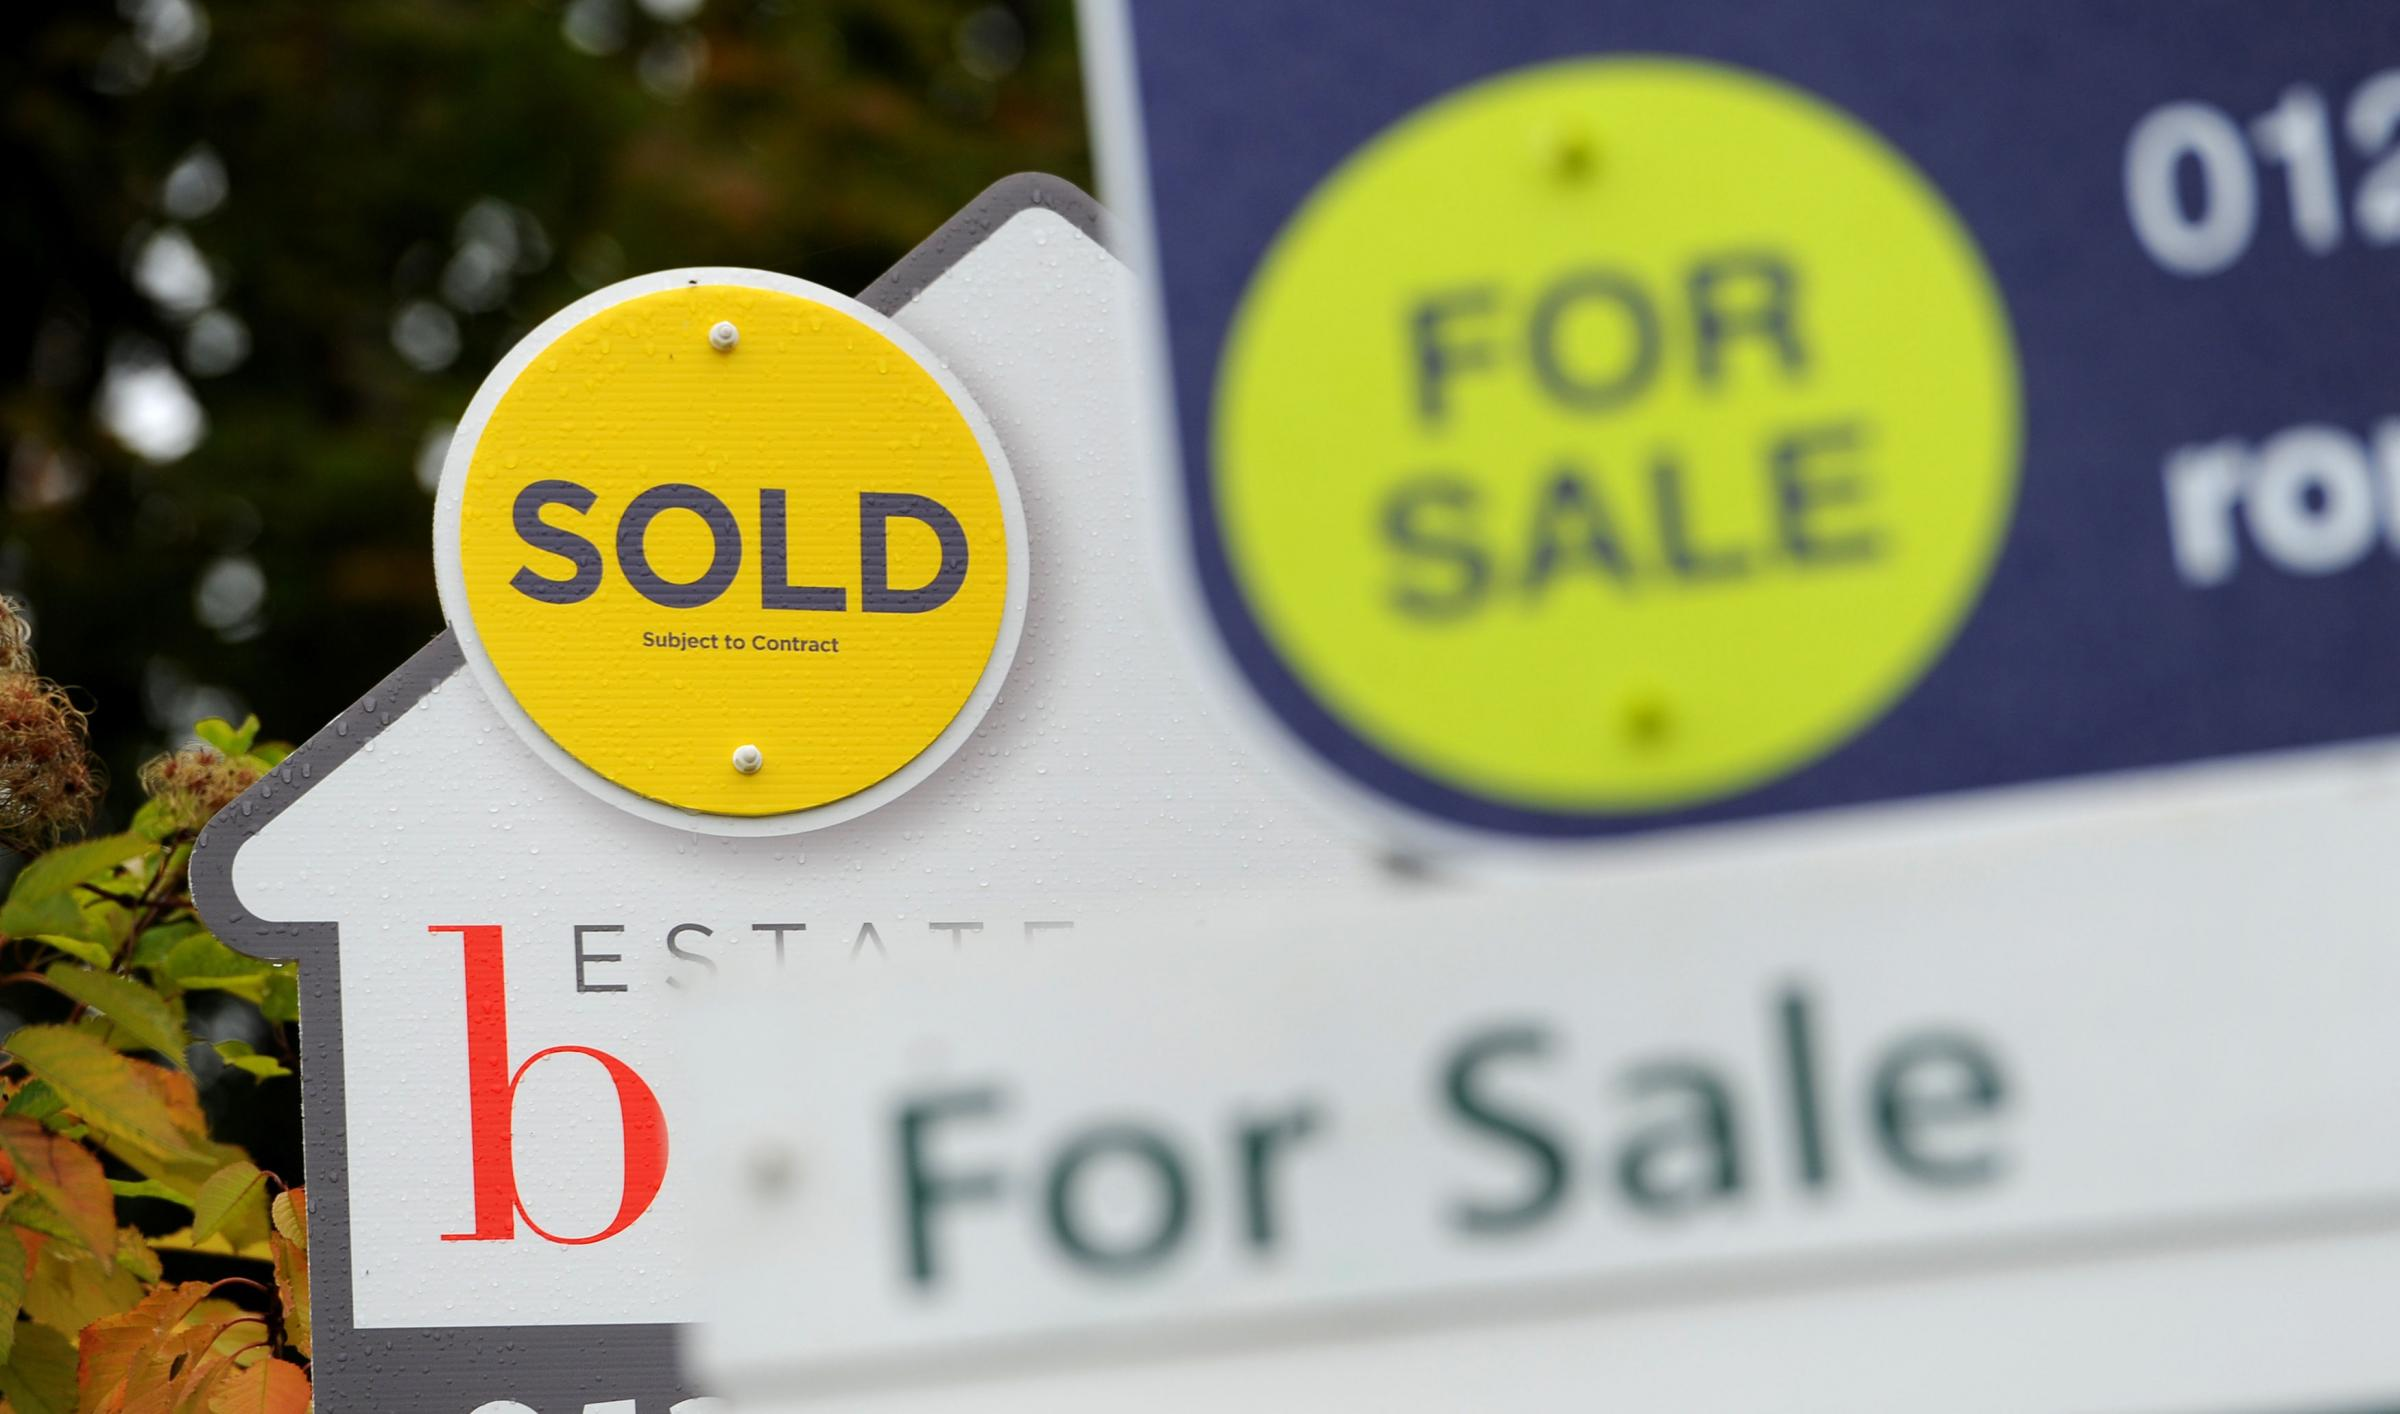 SOLD: Official figures show that house prices have recorded their biggest month-on-month dip in six years. Values fell by 0.5\% month on month in August, marking the biggest decline since July 2012.